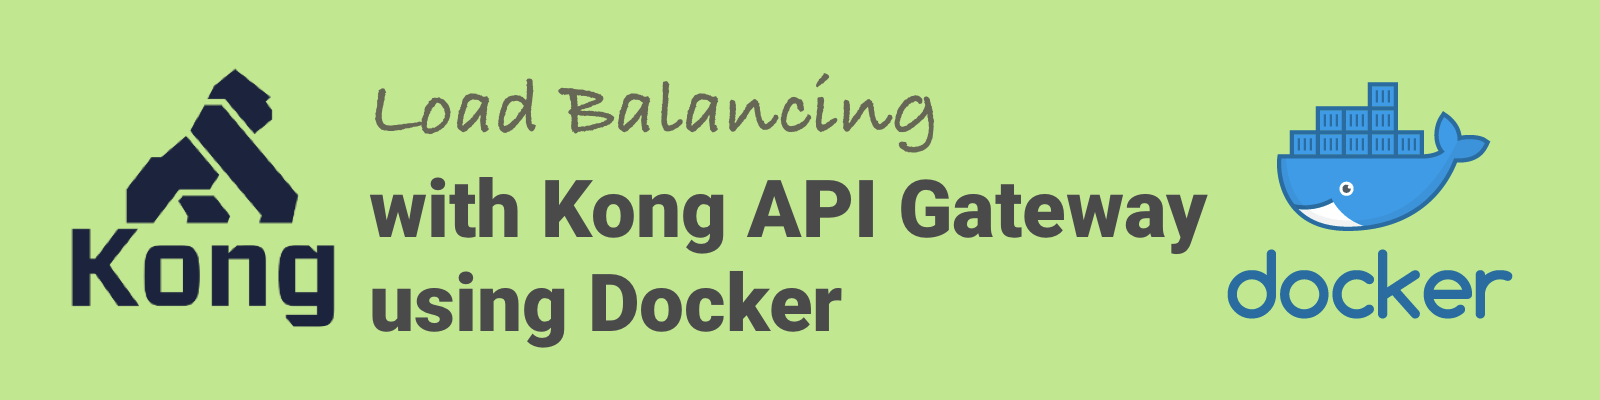 Load Balancing with Kong API Gateway using Docker | Moesif Blog